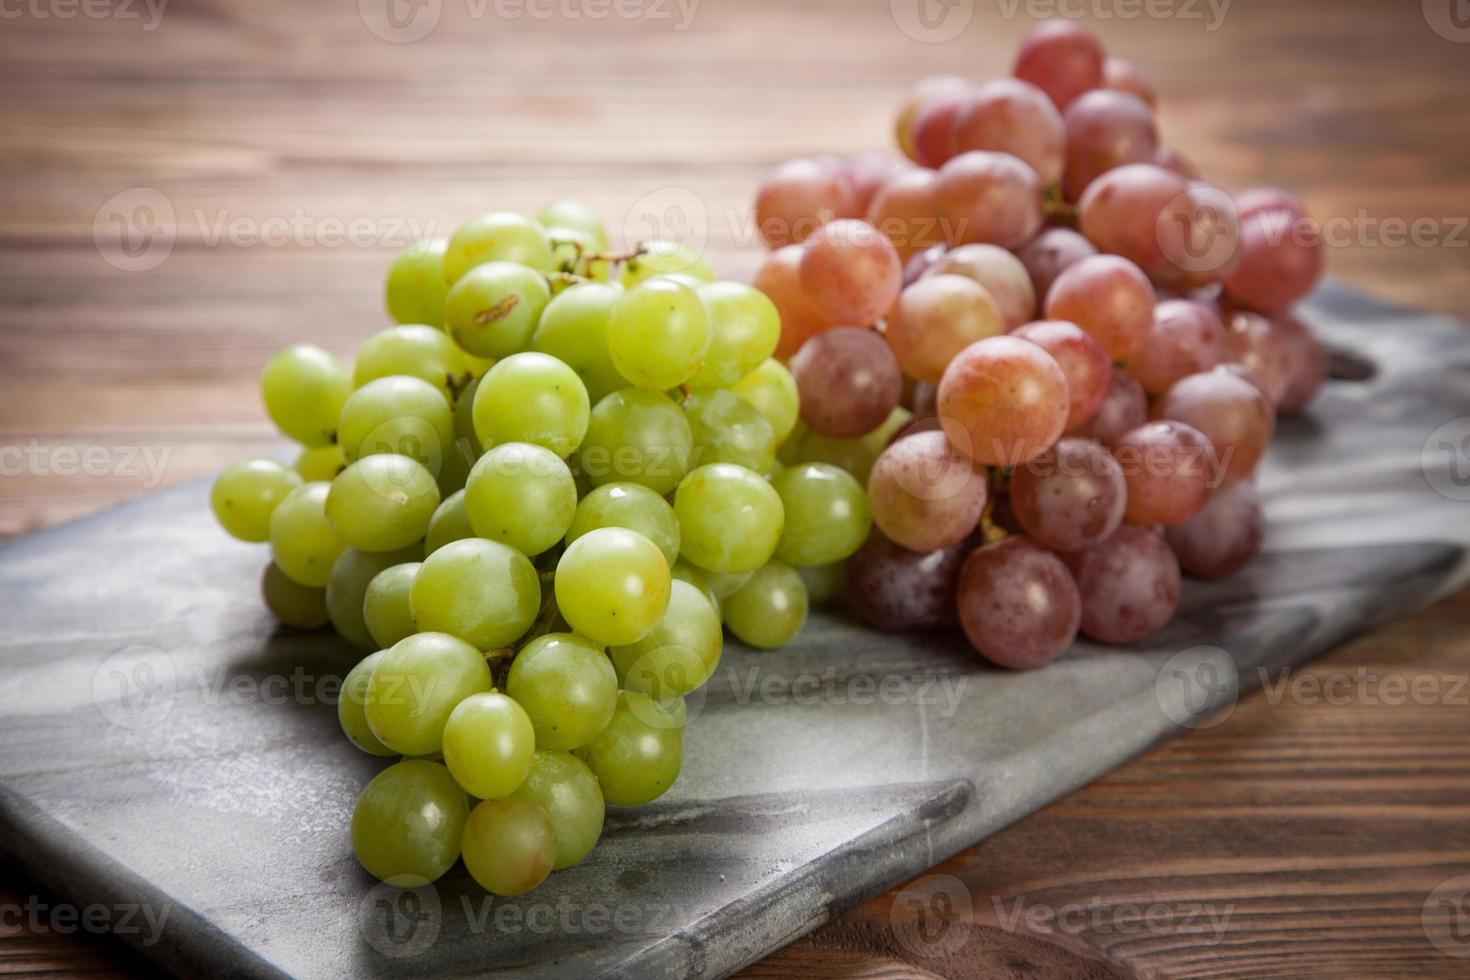 Delicious Grapes On A Kitchen Table 1346240 Stock Photo At Vecteezy